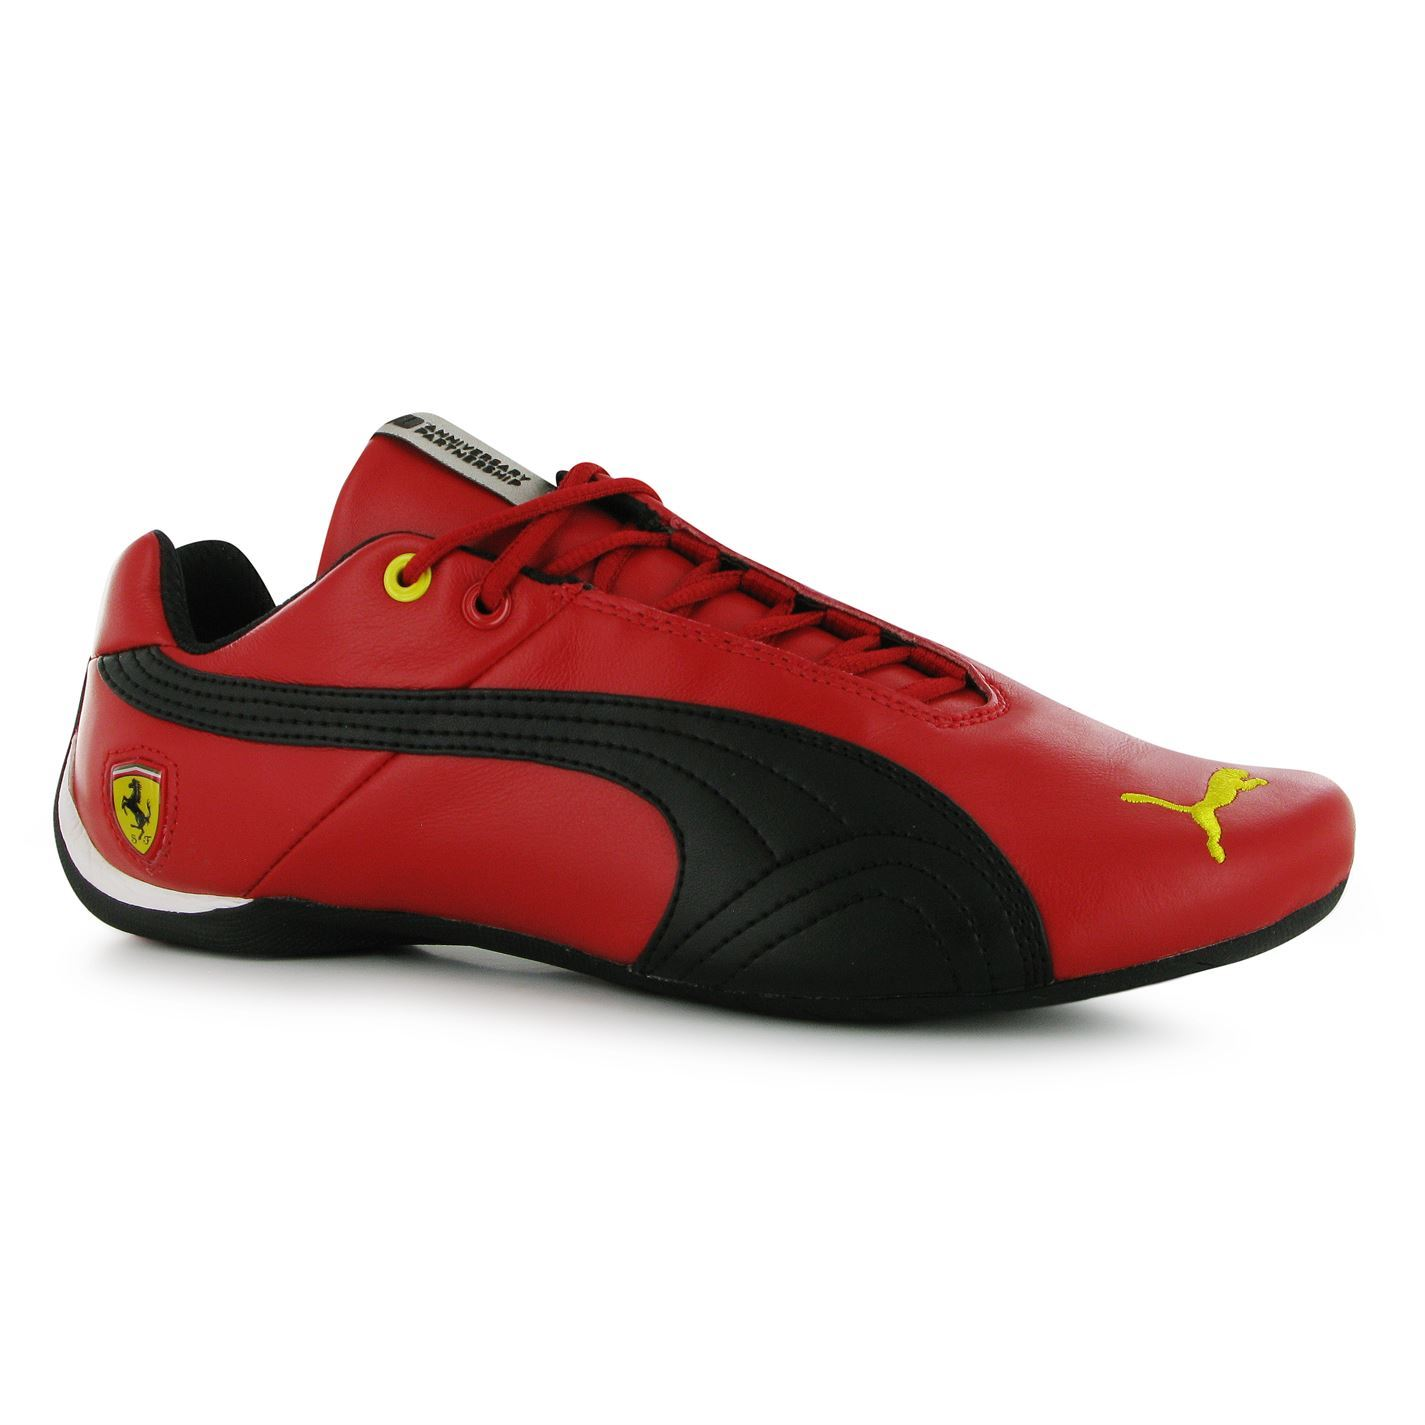 1e0cd0871857 Buy puma shoes ferrari collection   OFF36% Discounts